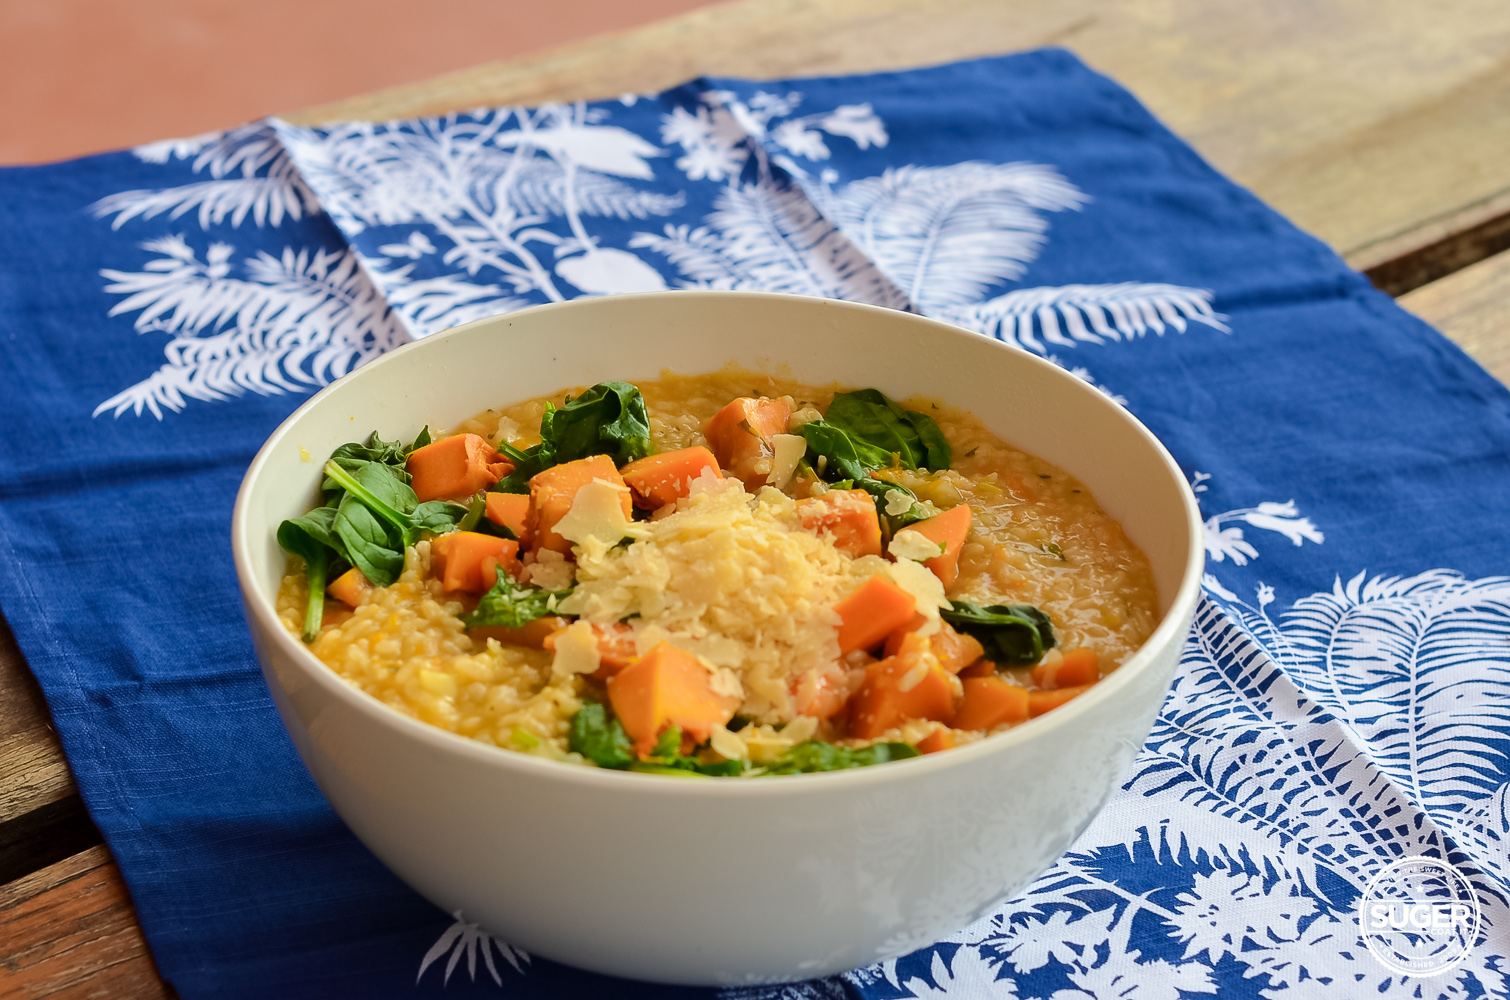 thermomix pumpkin and spinach risotto recipe-8